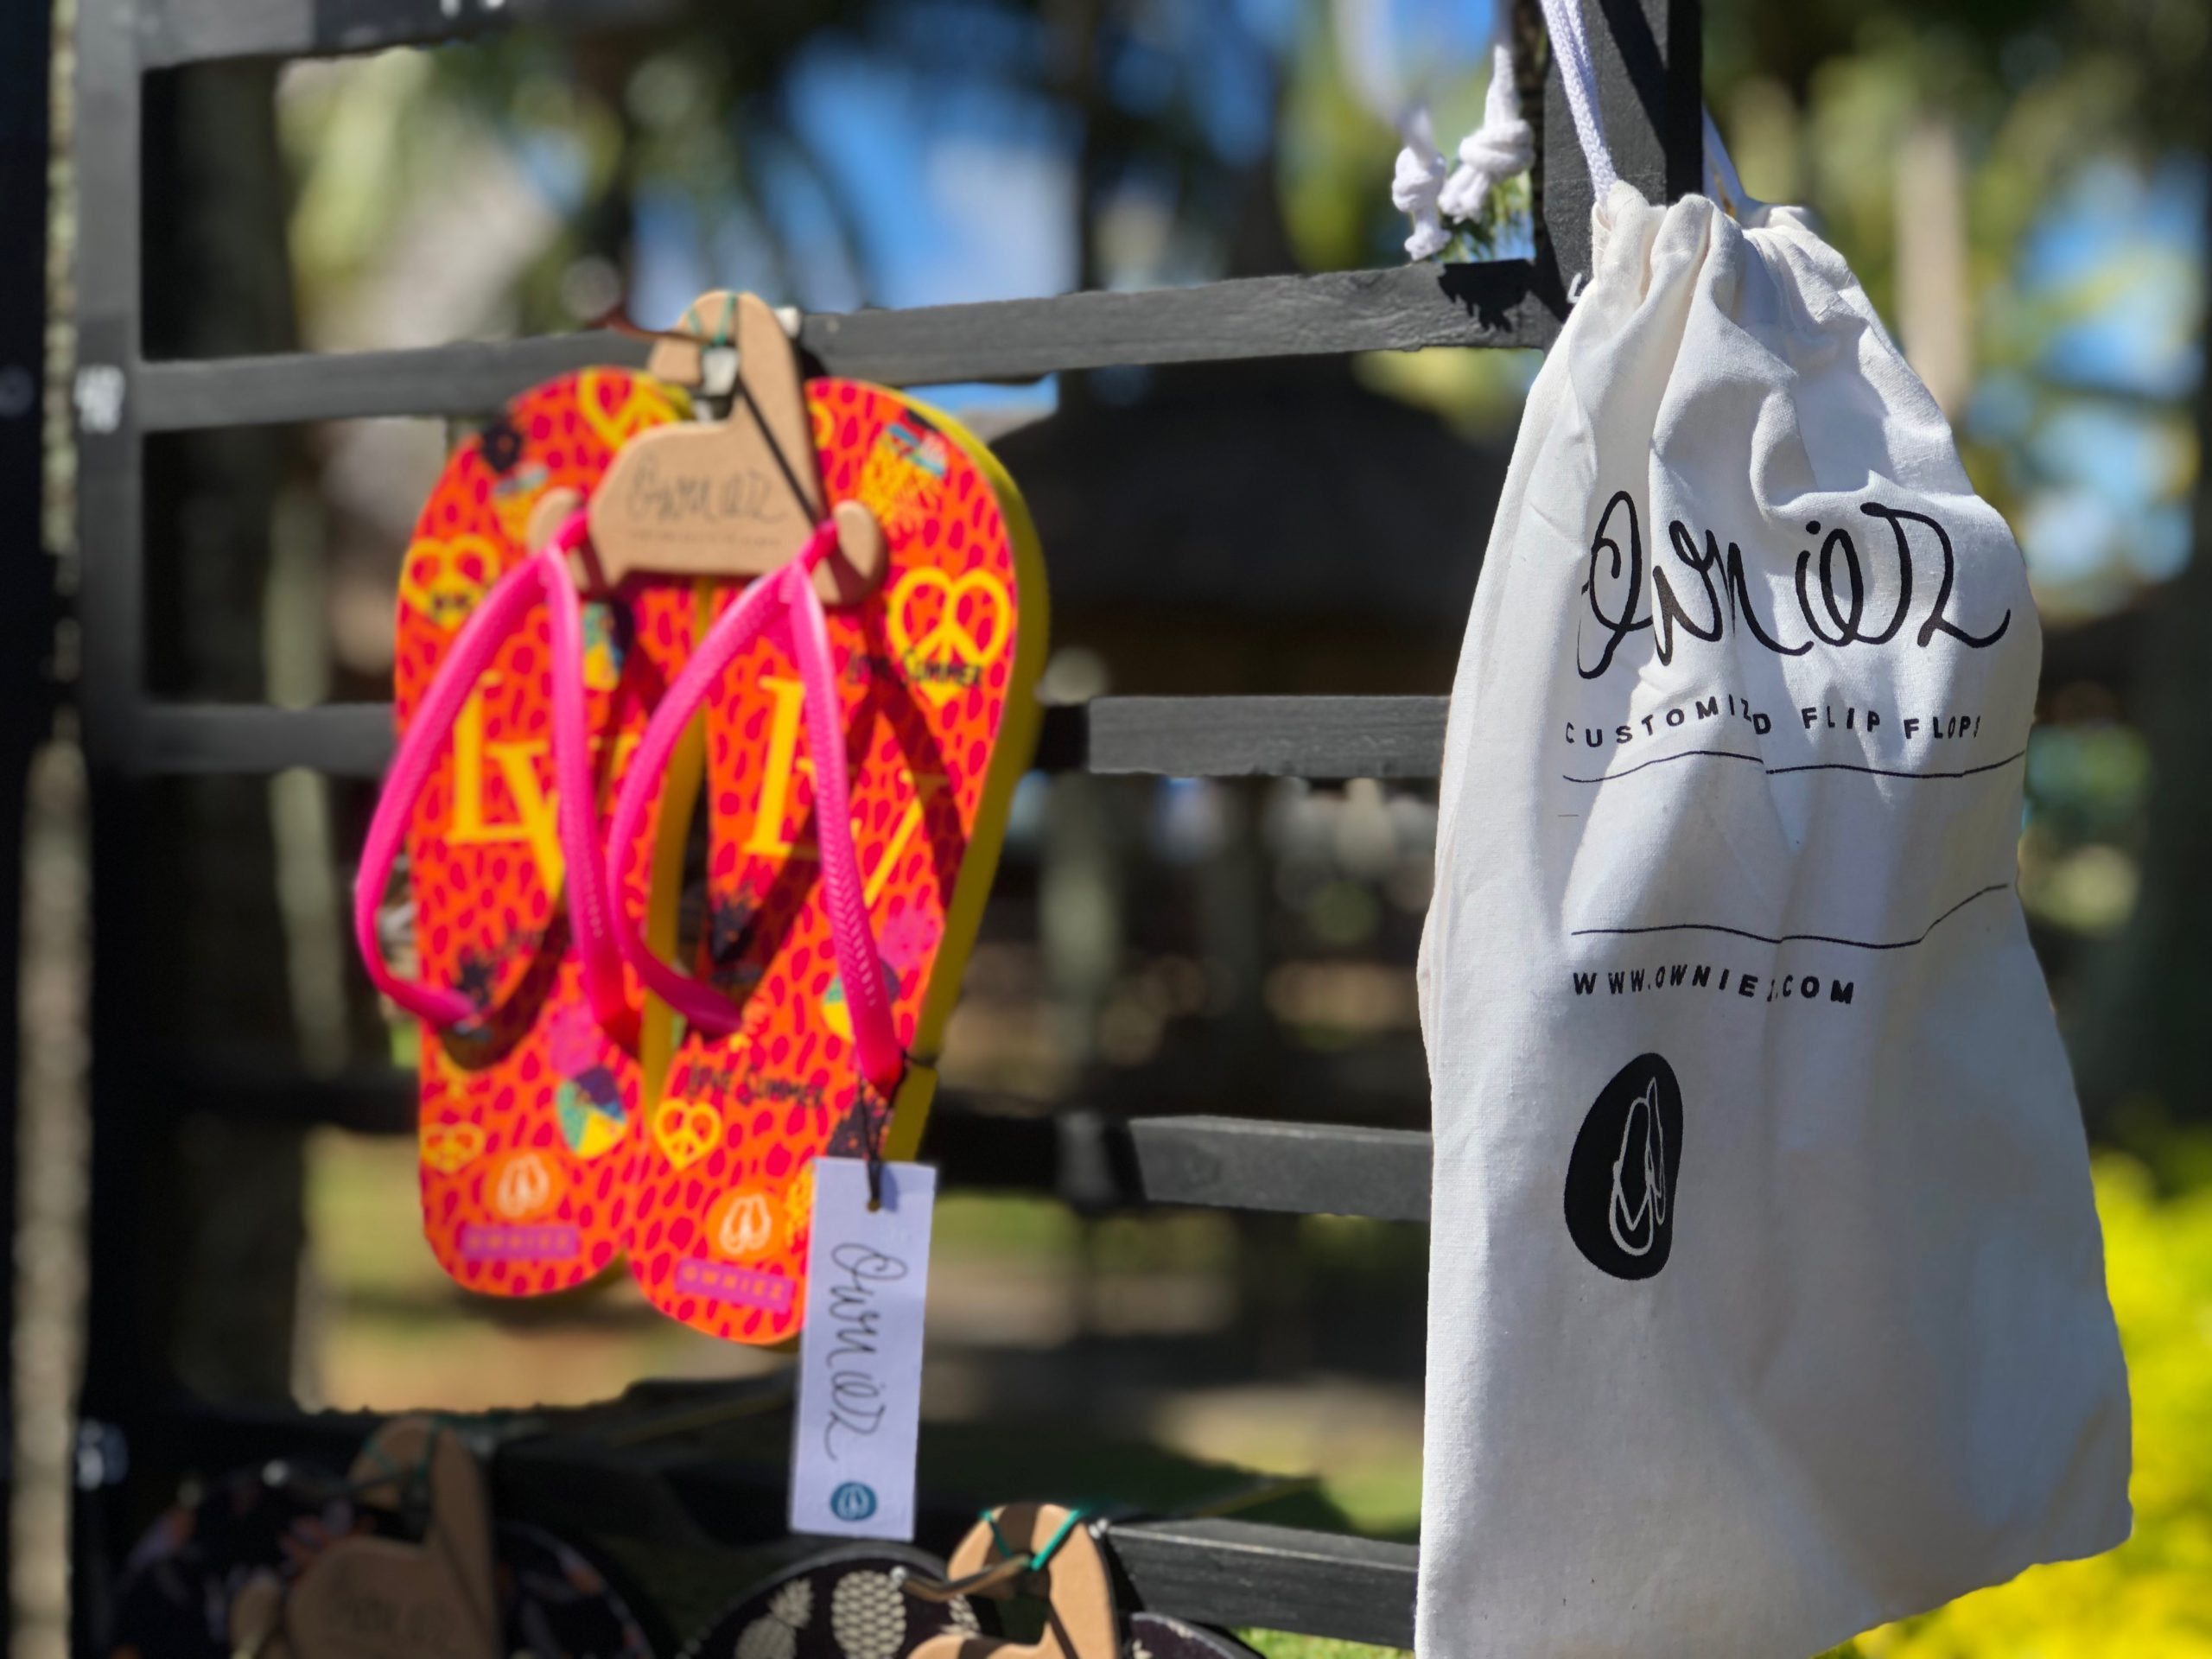 Owniez Display - Give away Bag - Love Summer Customized Flip Flops